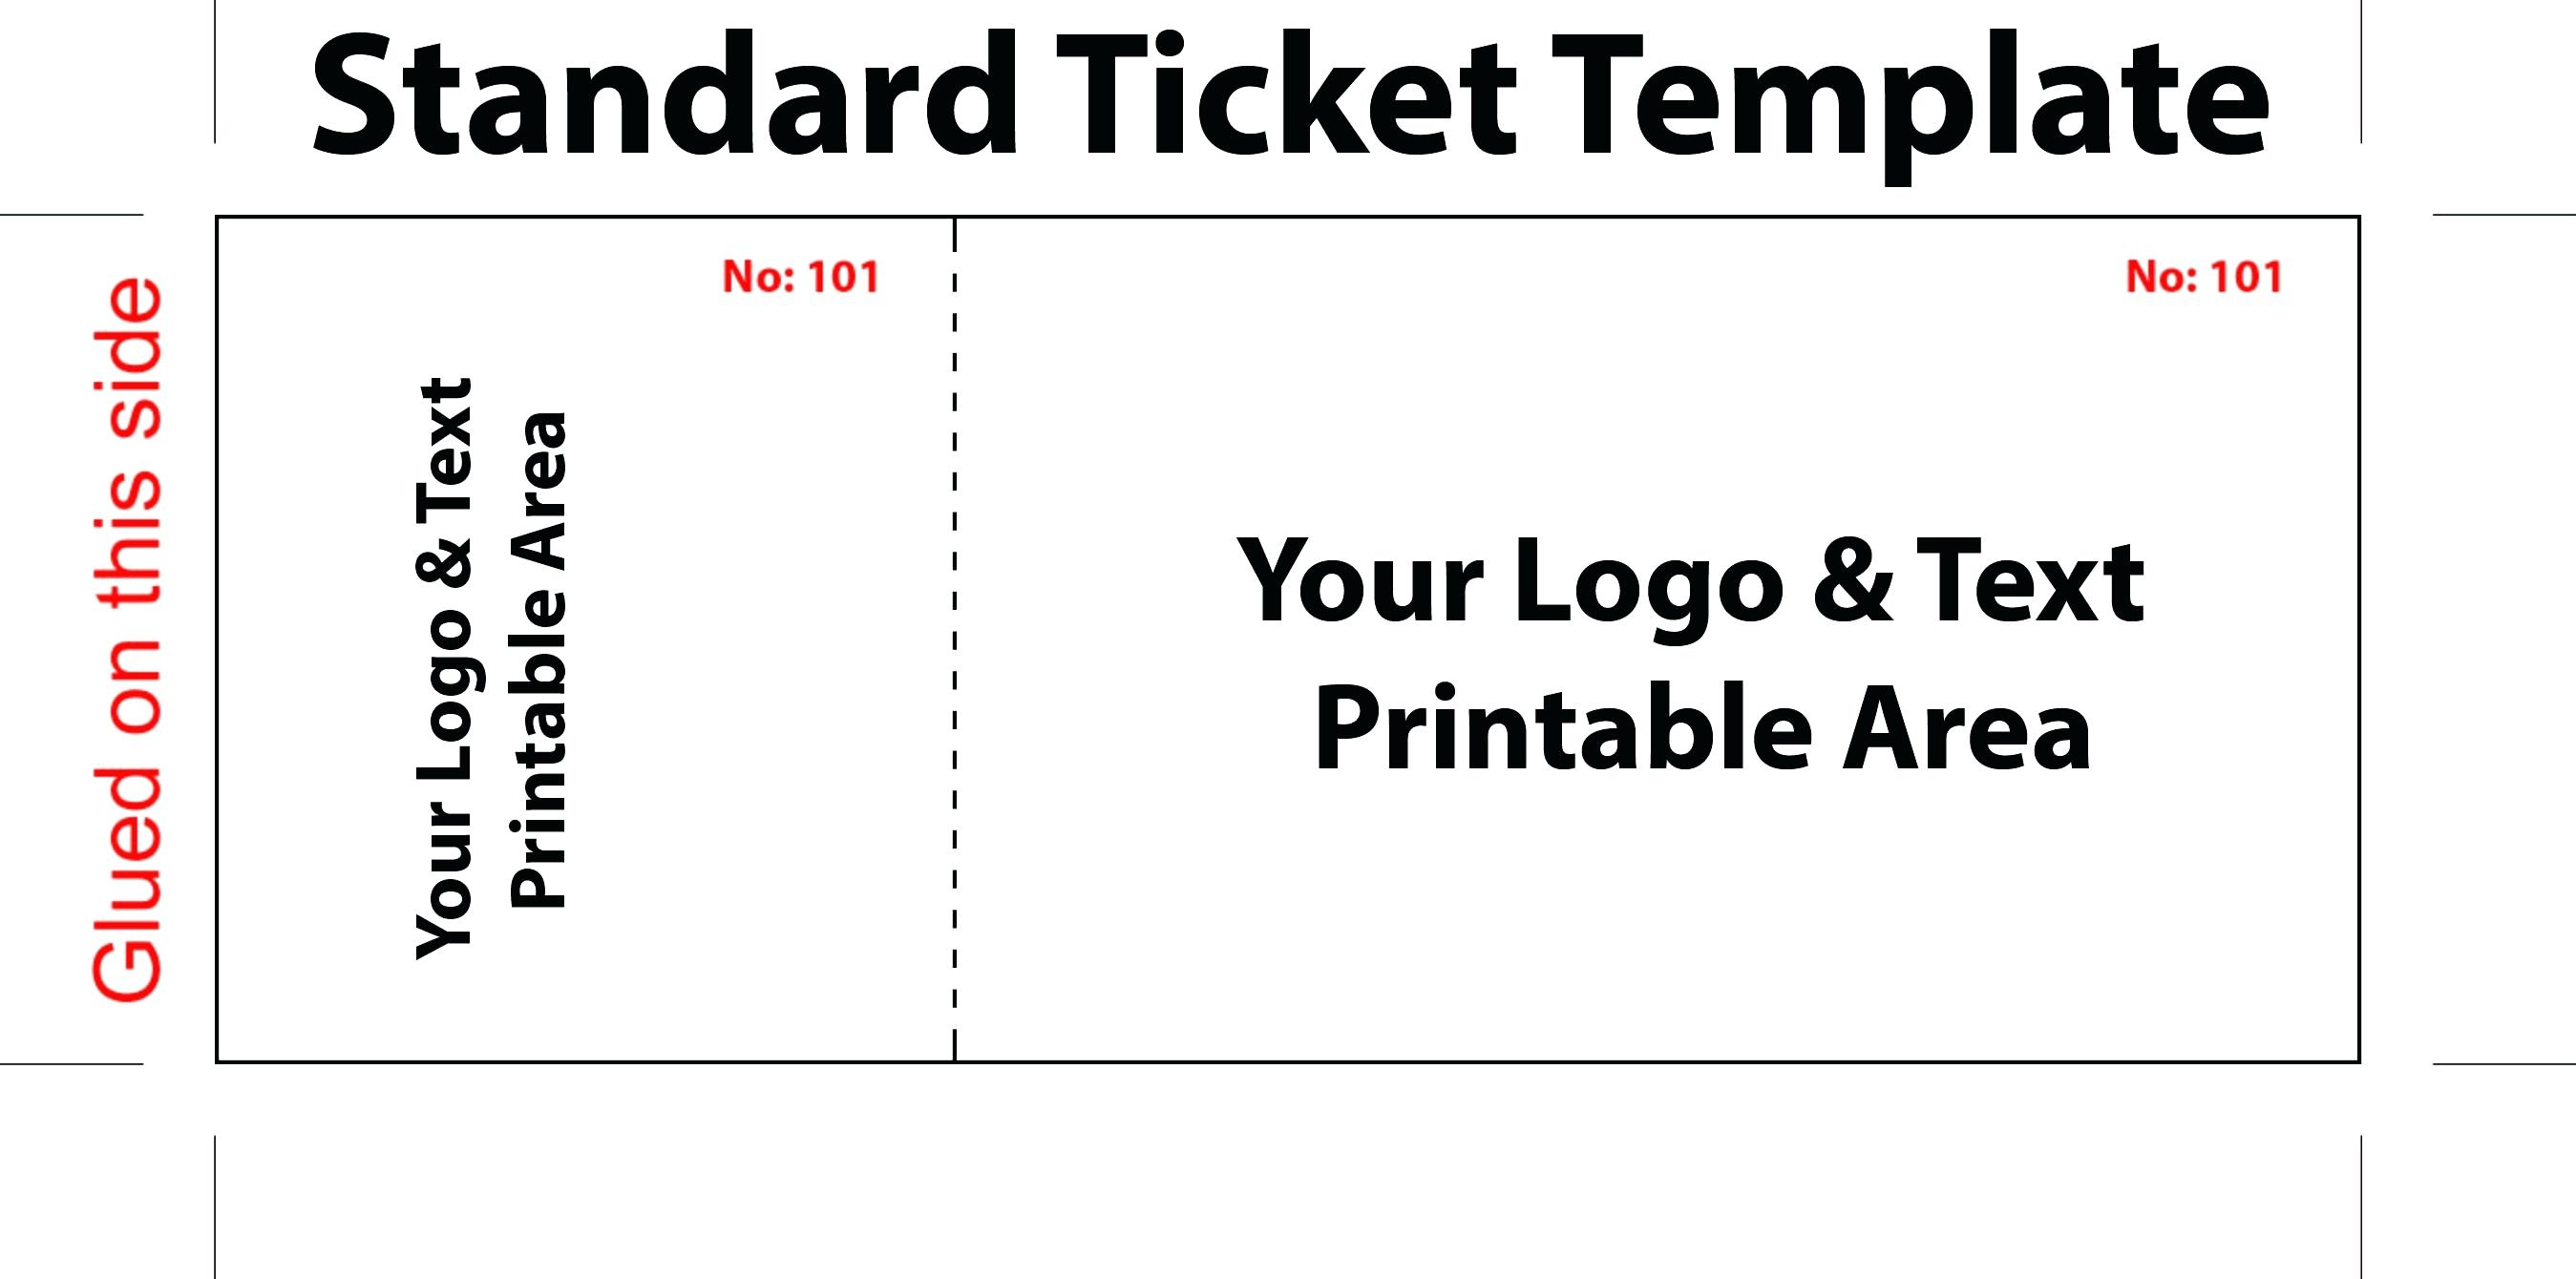 020 Template Ideas Free Printable Raffle Tickets Ticket For Word New - Free Printable Raffle Tickets With Stubs